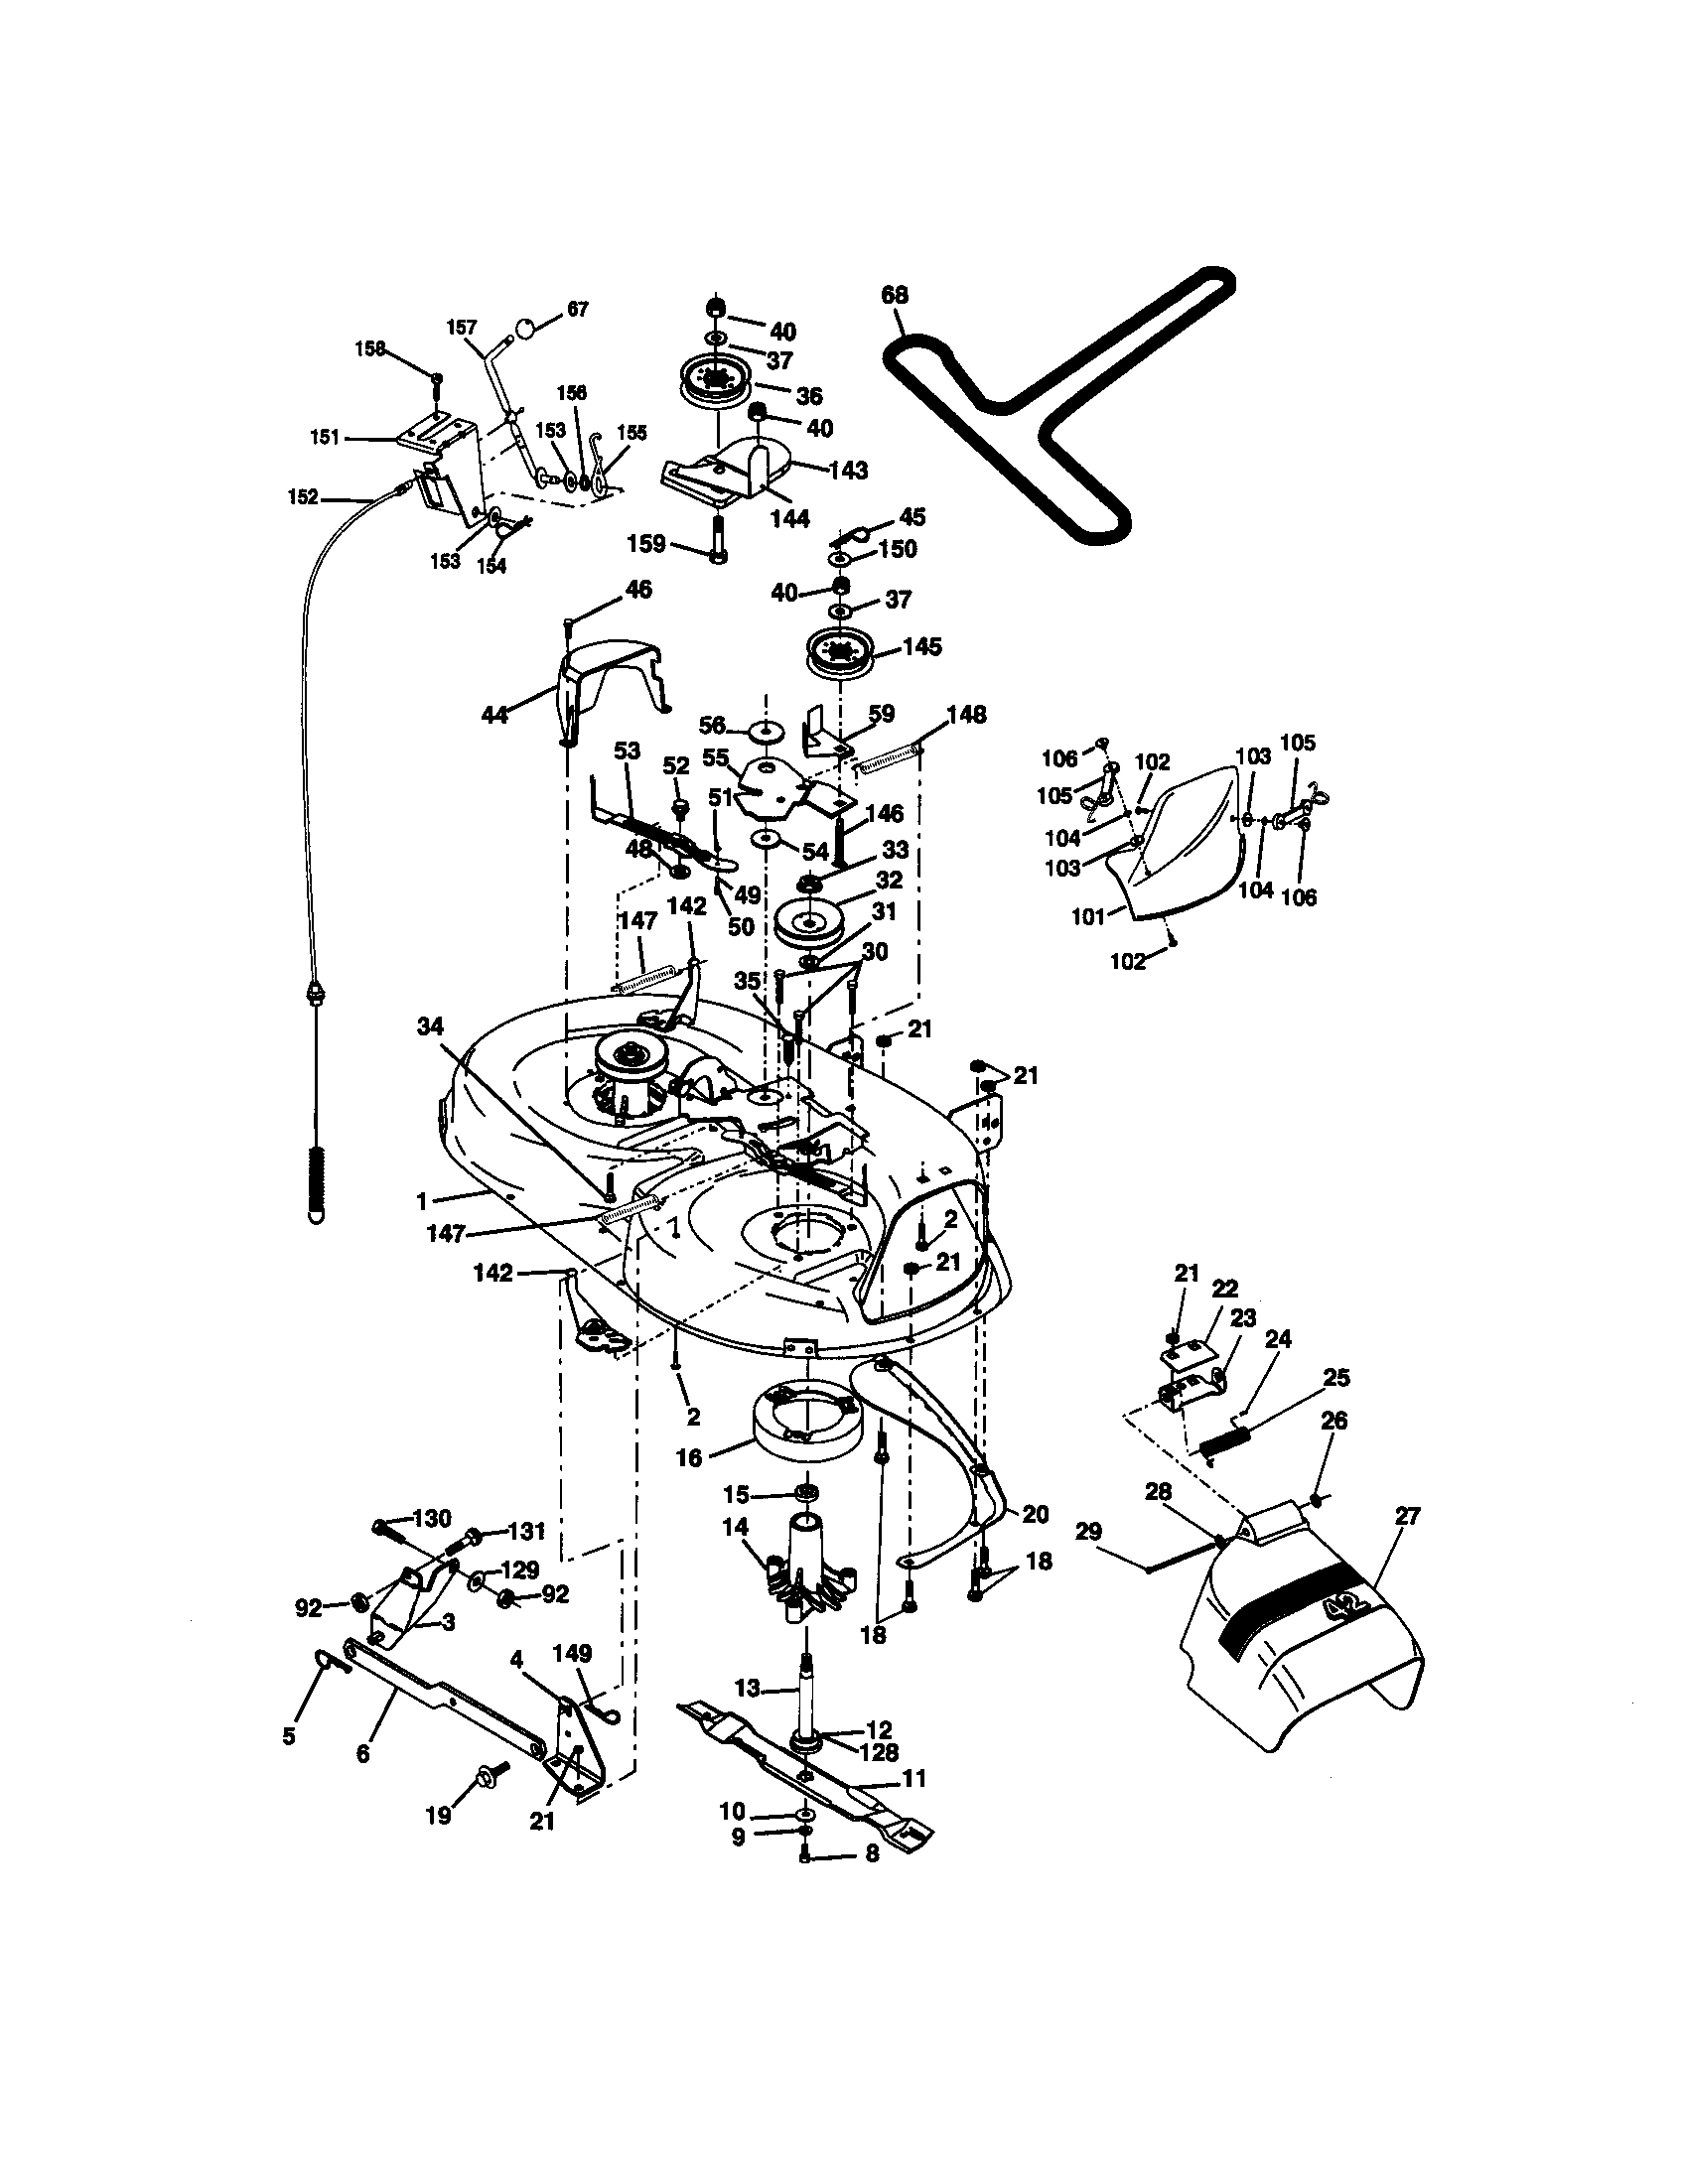 small resolution of wiring diagram for lt1000